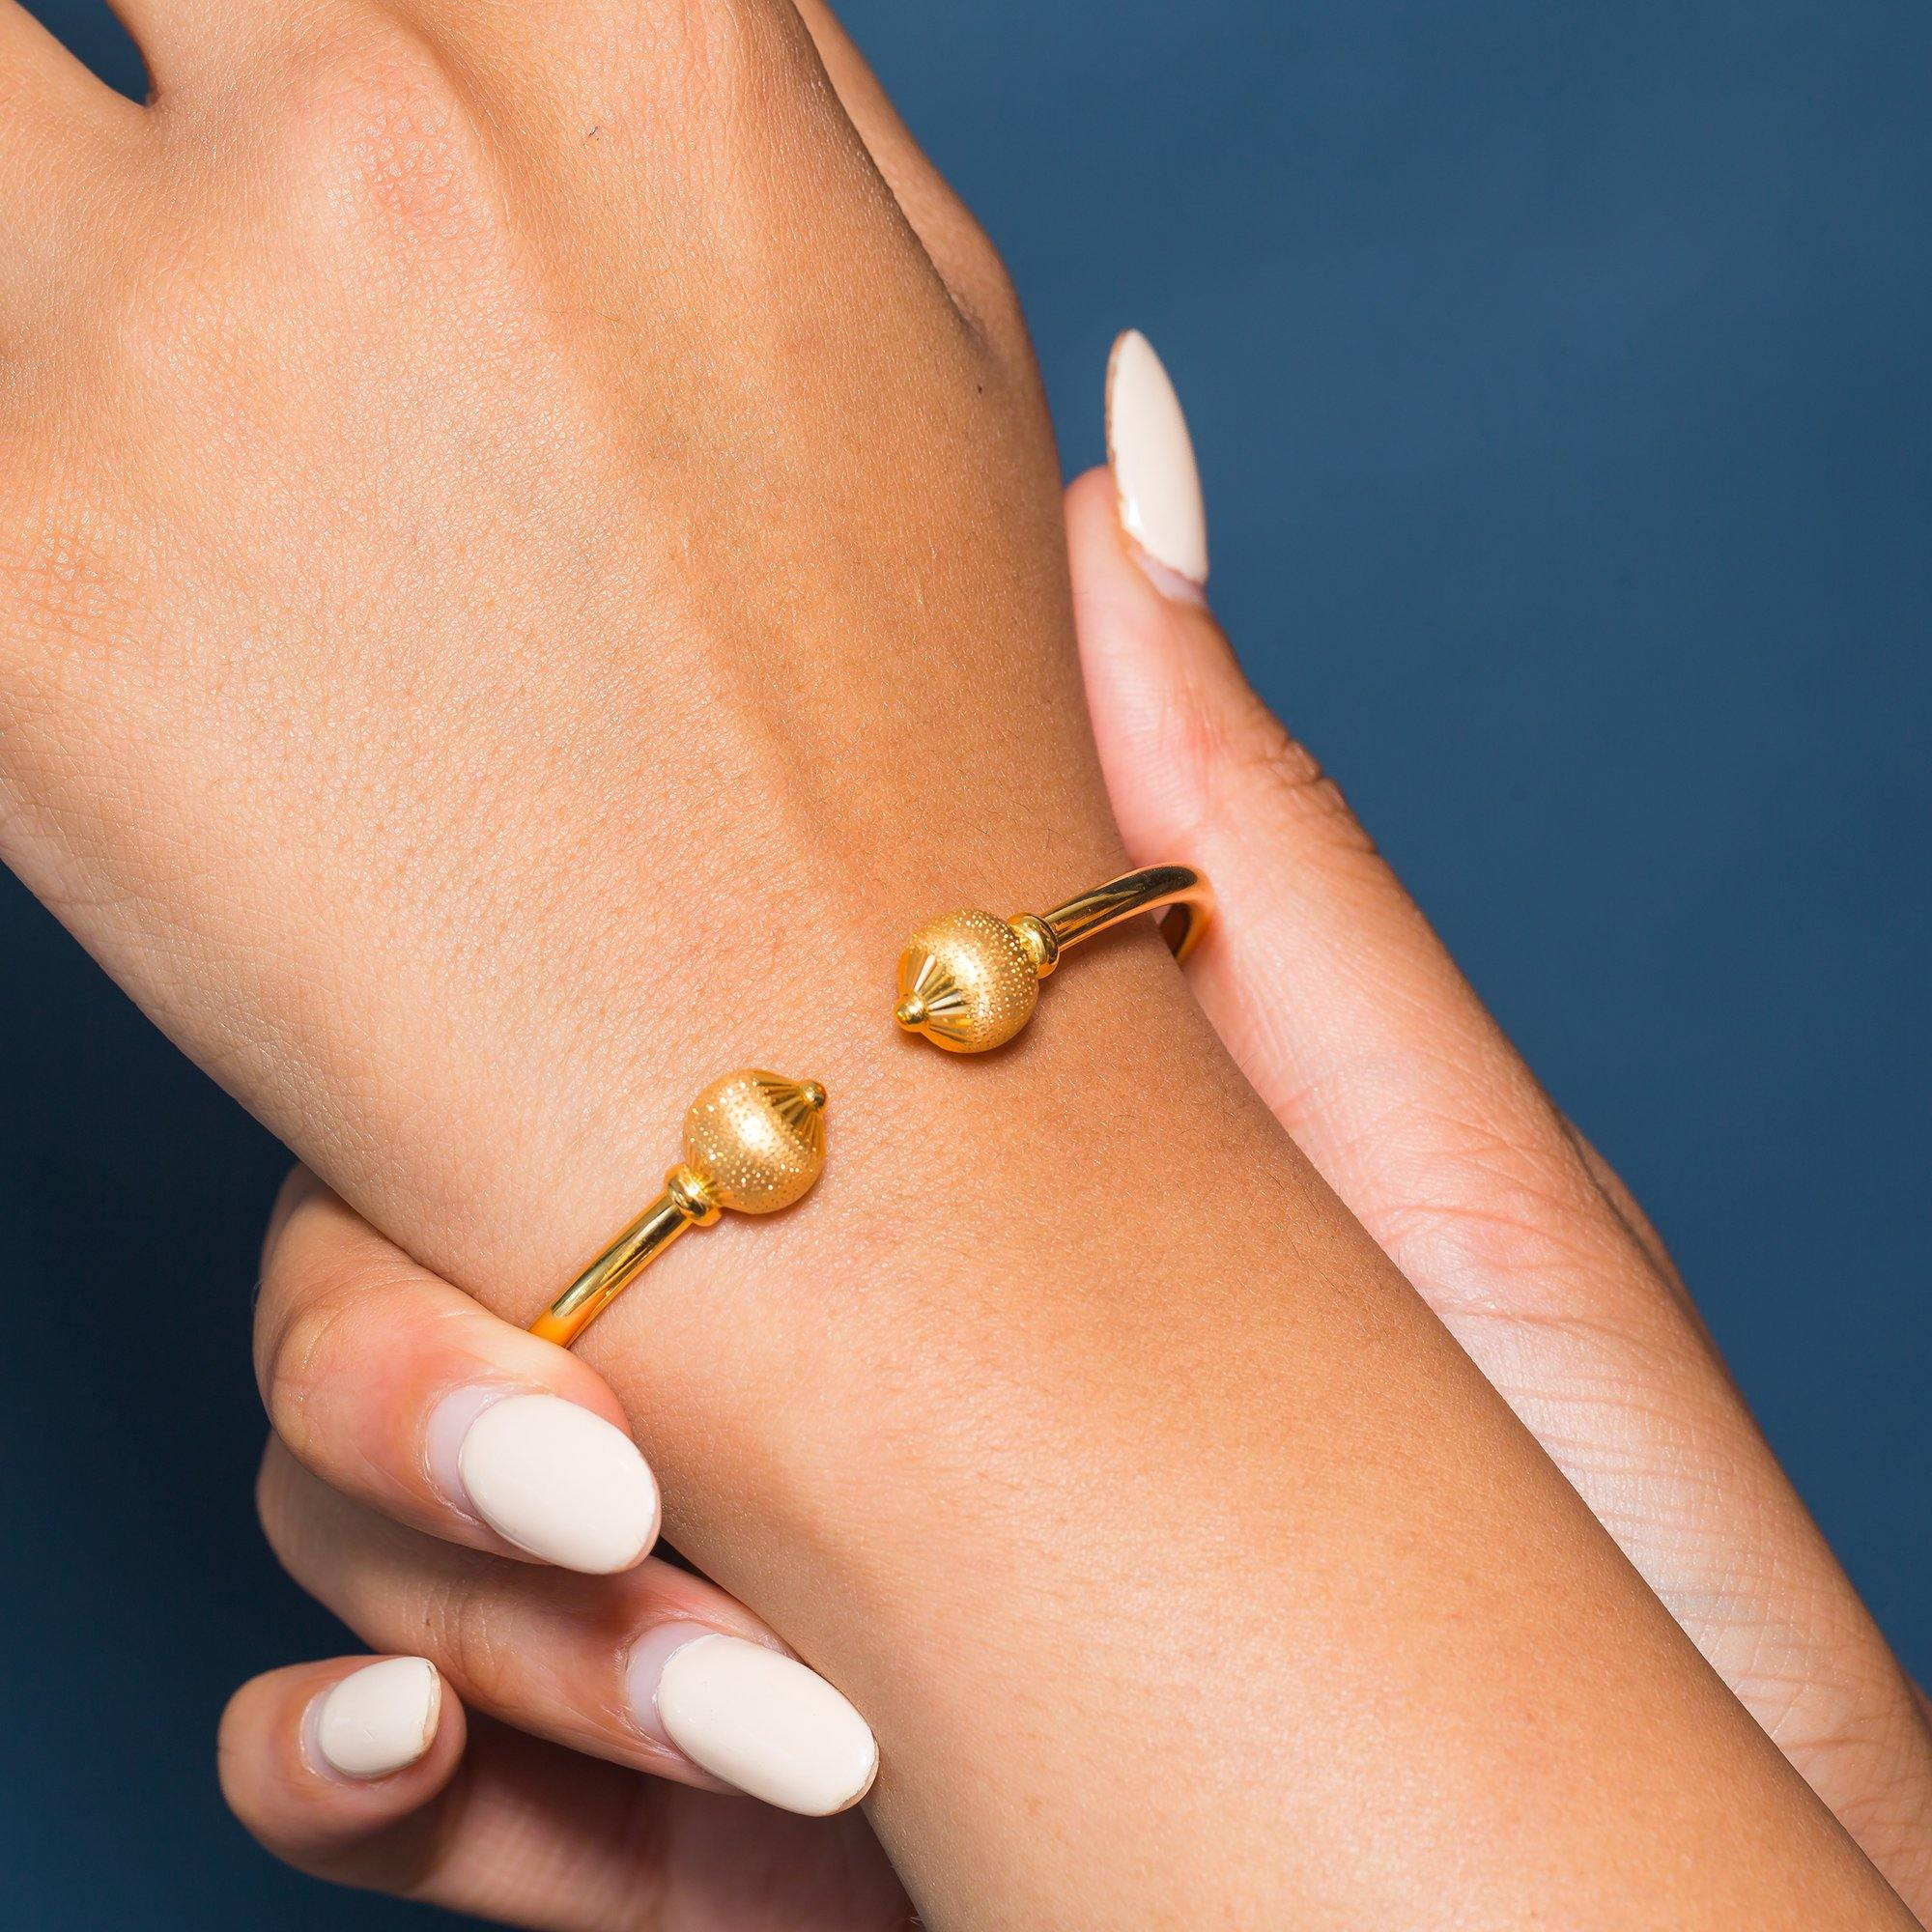 22K Yellow Gold Bangle W/ Facing Speckled Accent Balls